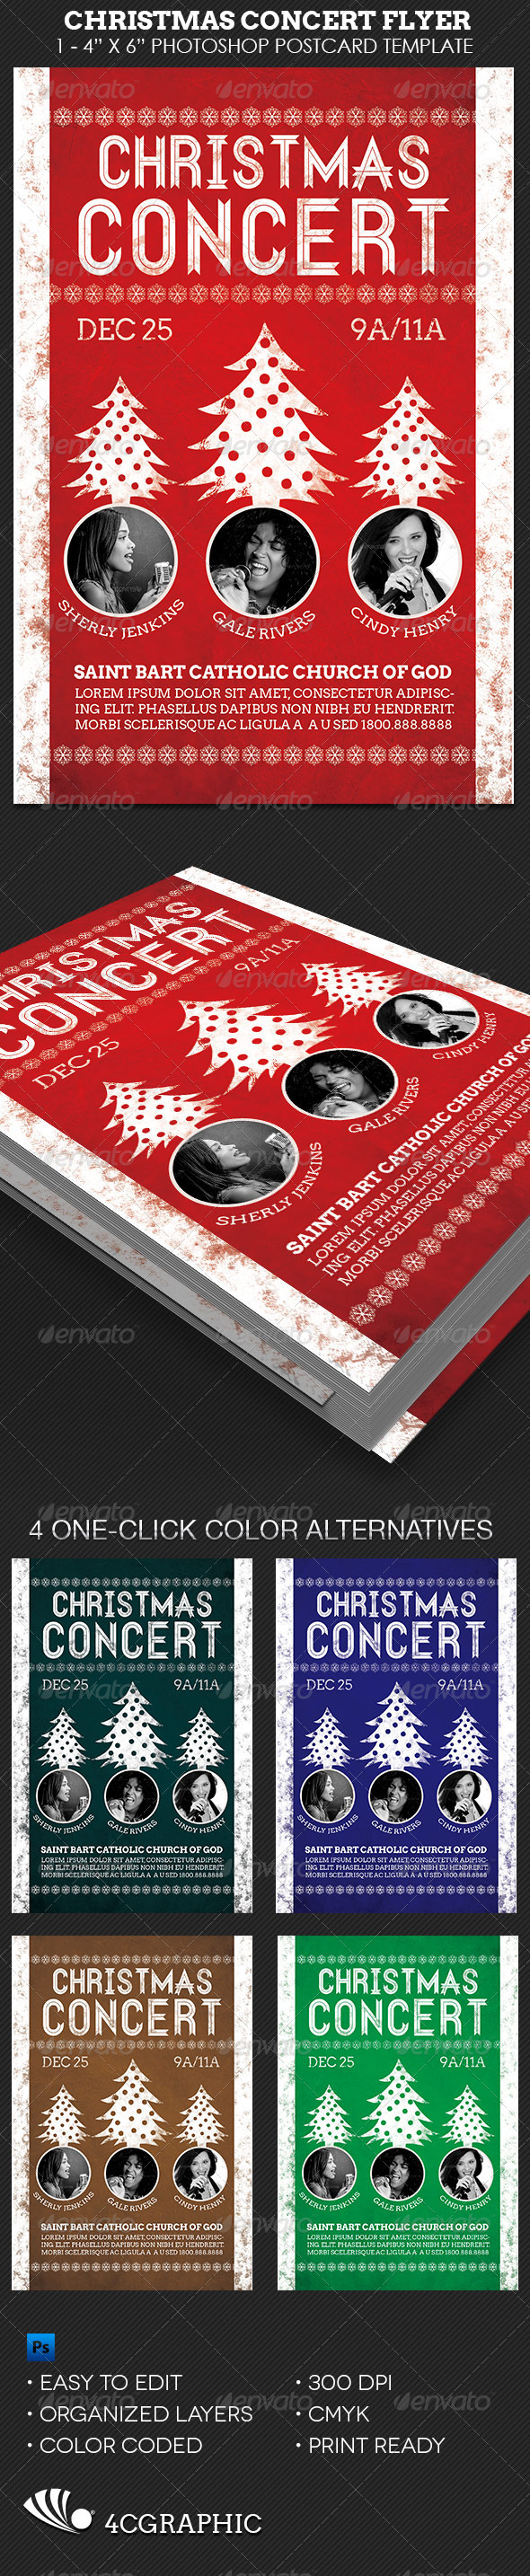 Christmas Concert Flyer Template - Concerts Events